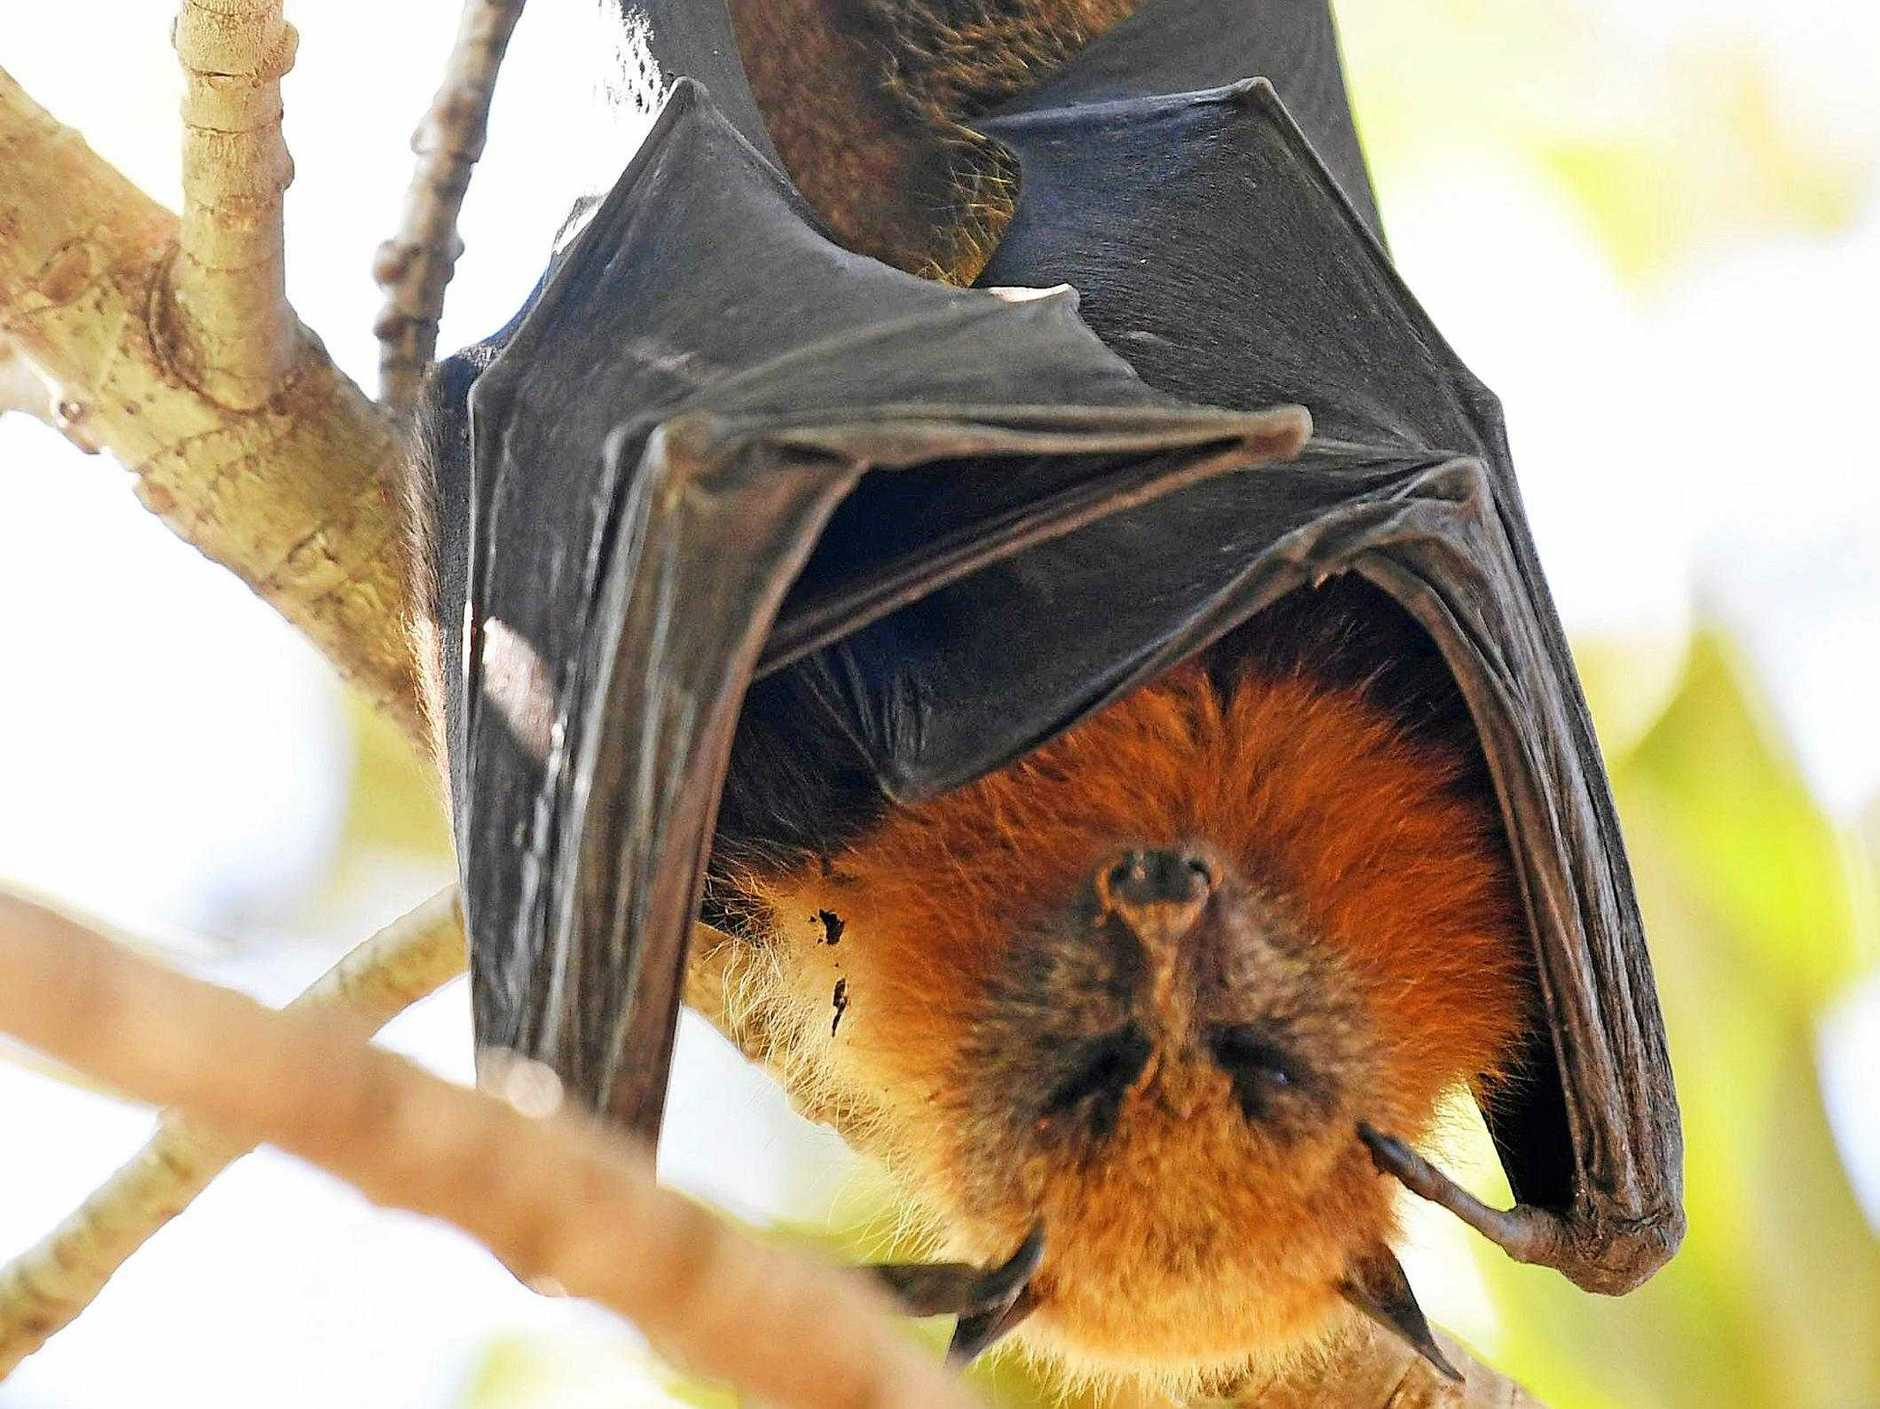 WARNING: The warning from Queensland Health to anyone who sees flying foxes in distress or dead on the ground is don't touch them.